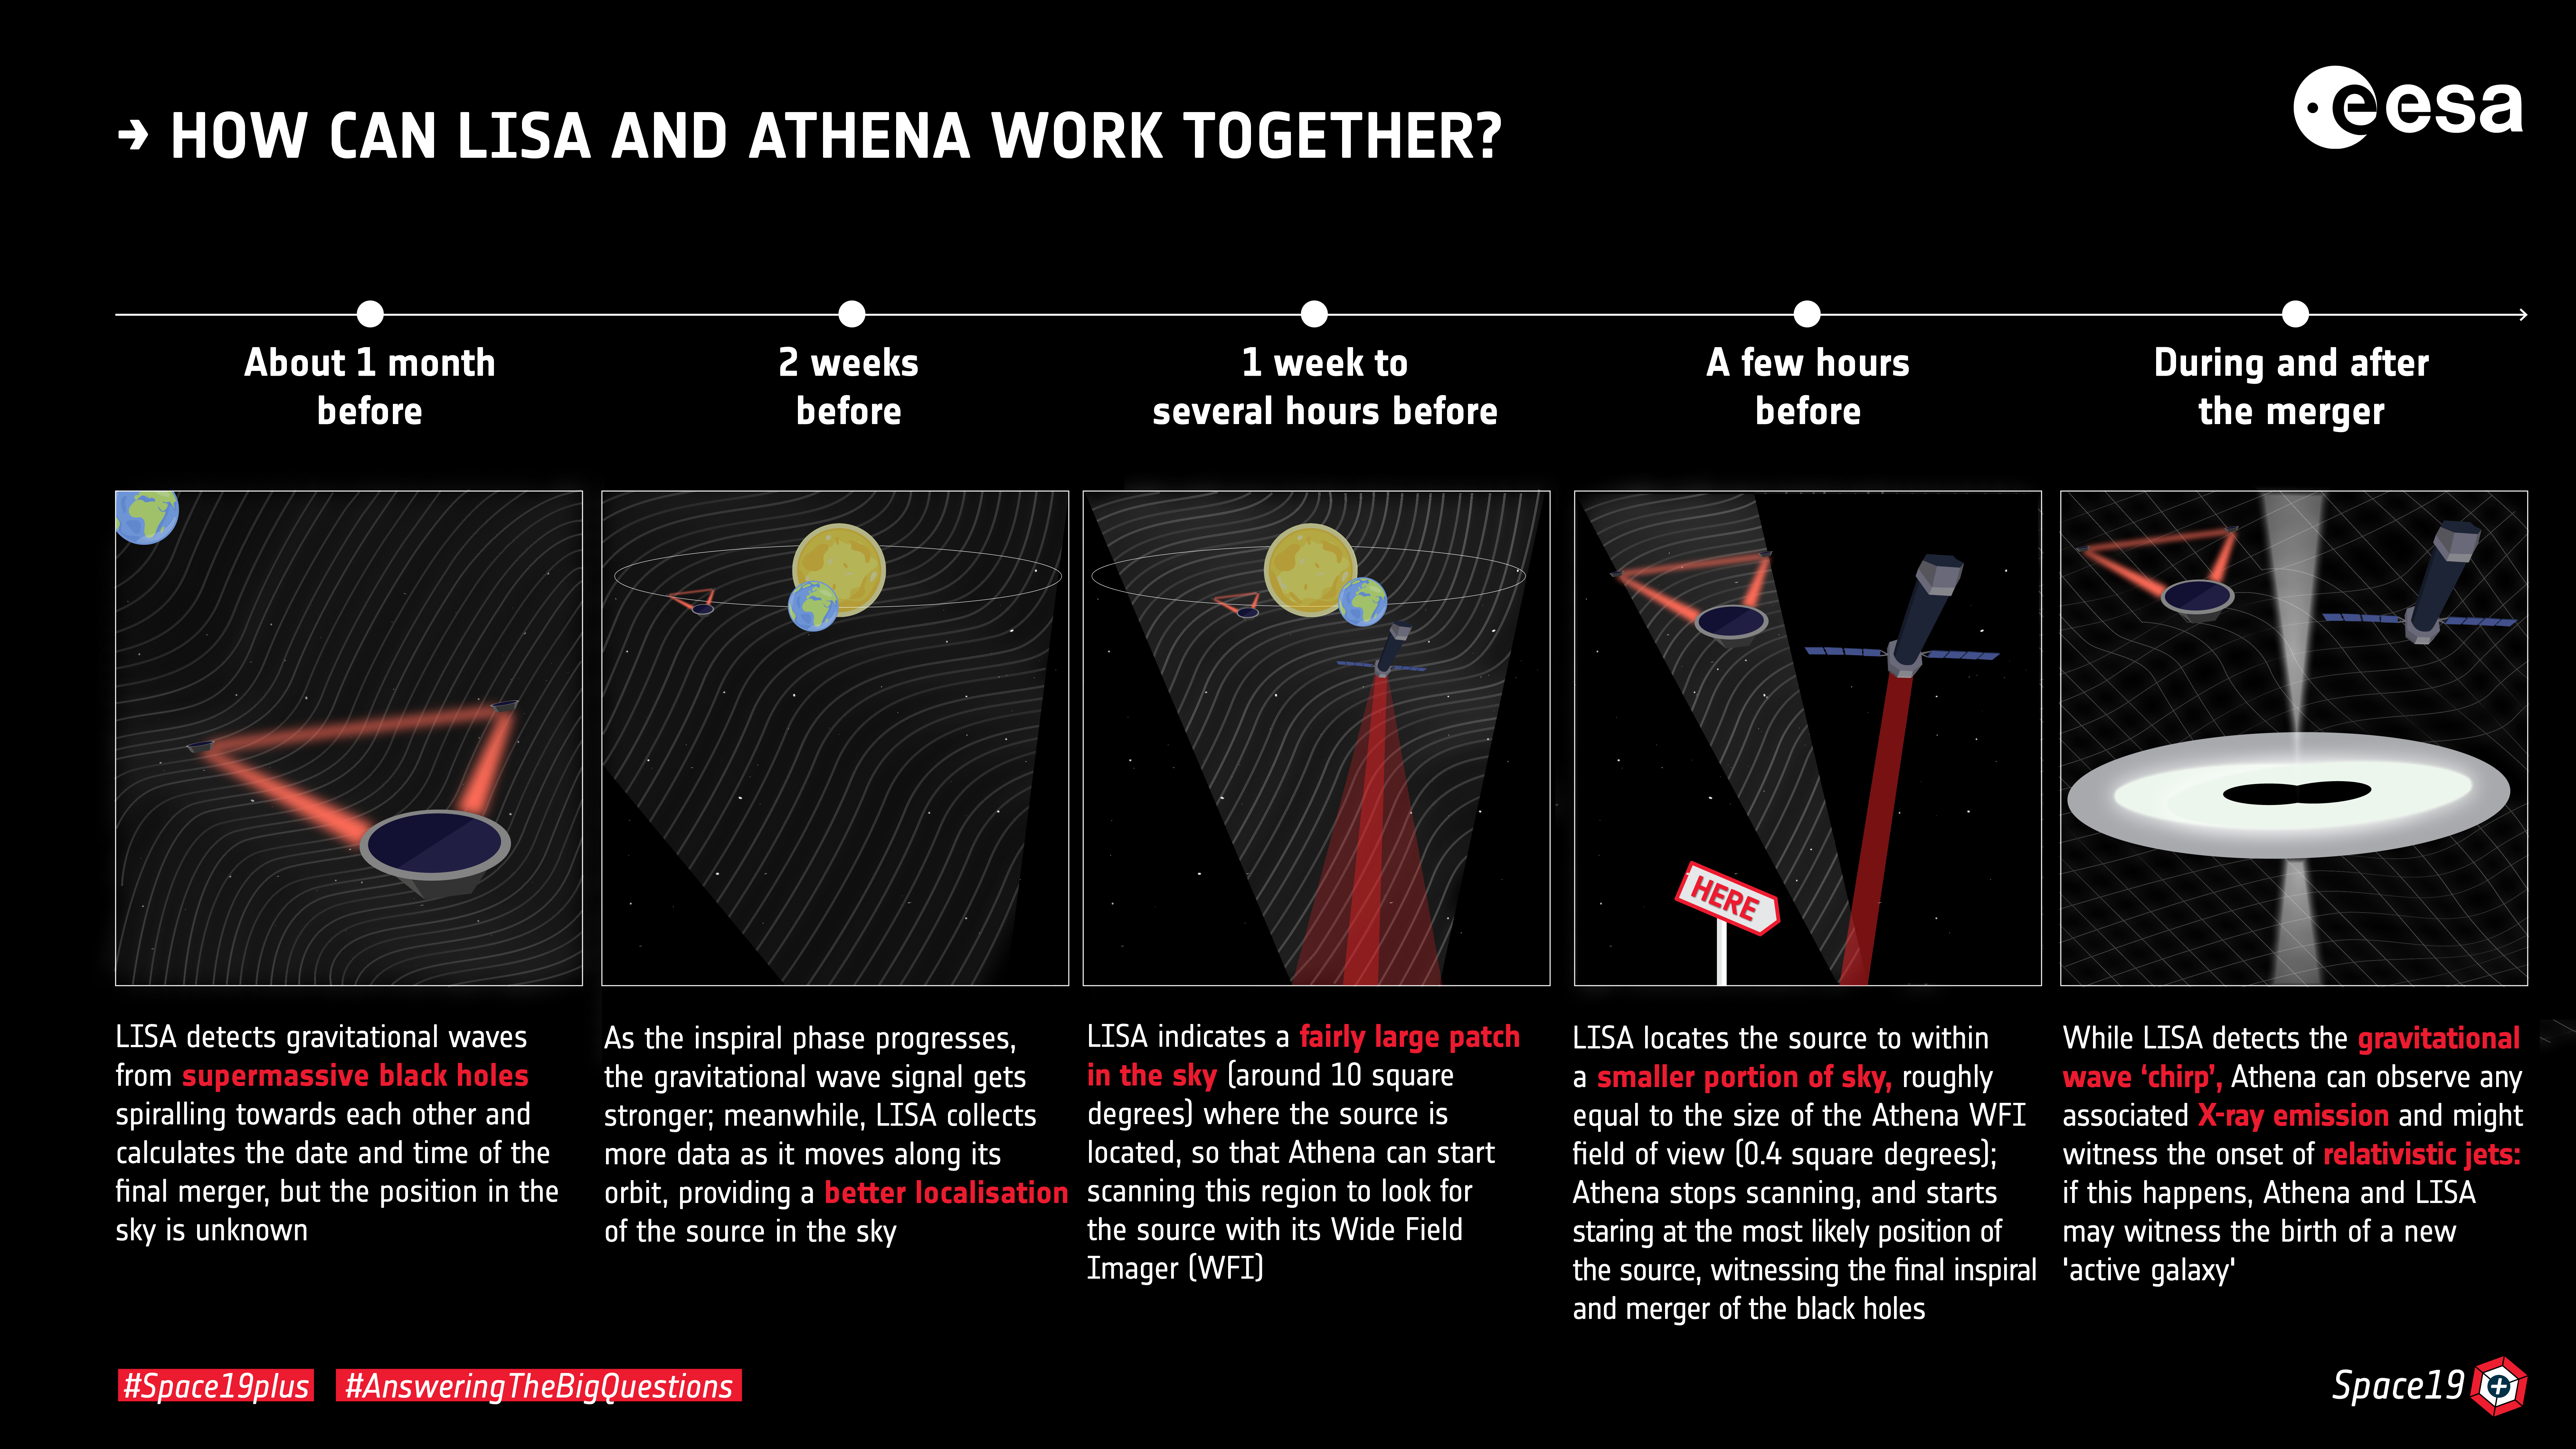 1567214288271-How_can_LISA_and_Athena_work_together.jpg